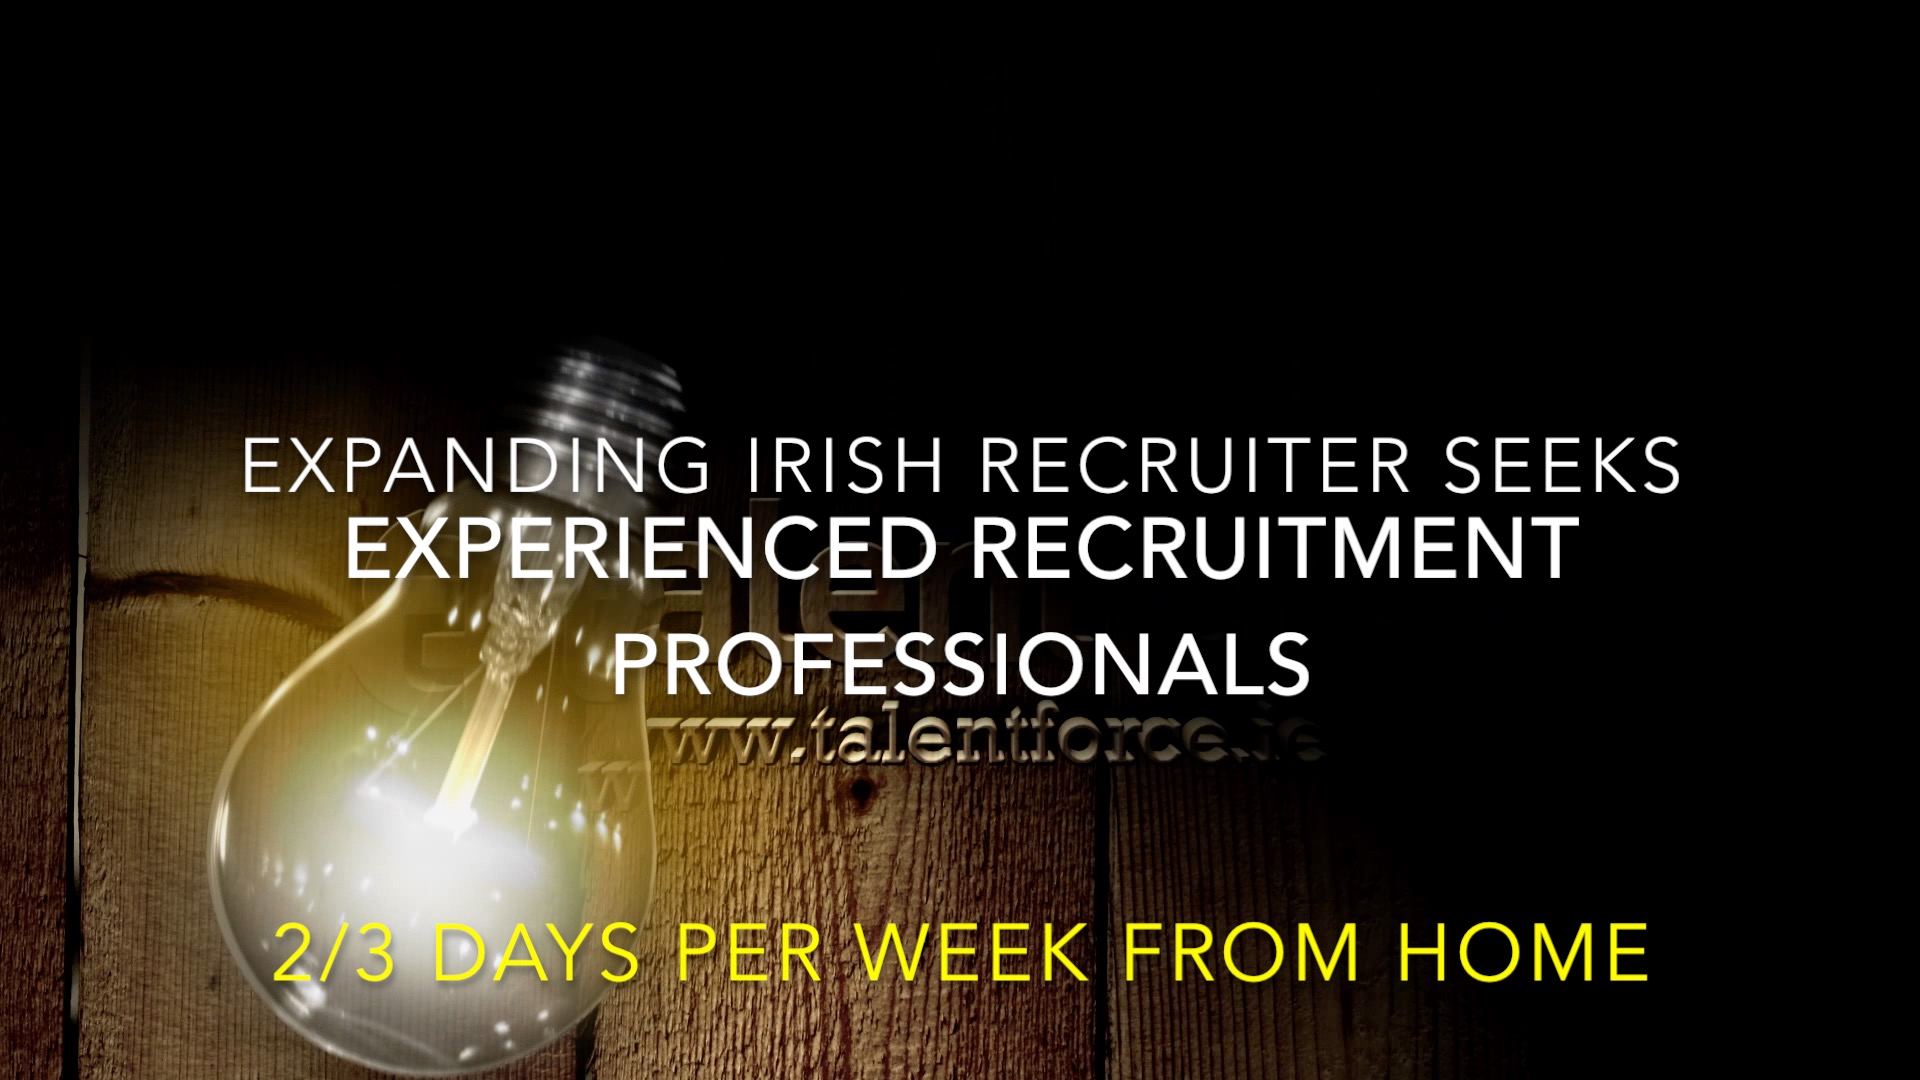 Part Time Jobs in Dublin. There are 11 part time jobs in Dublin available. Dublin is the capital of and largest city in Ireland. One of the coolest and oldest areas in Dublin is Temple Bar. If you like getting to know new people, Irish pubs are definitely the place for you. You will always find a part time job in Dublin.